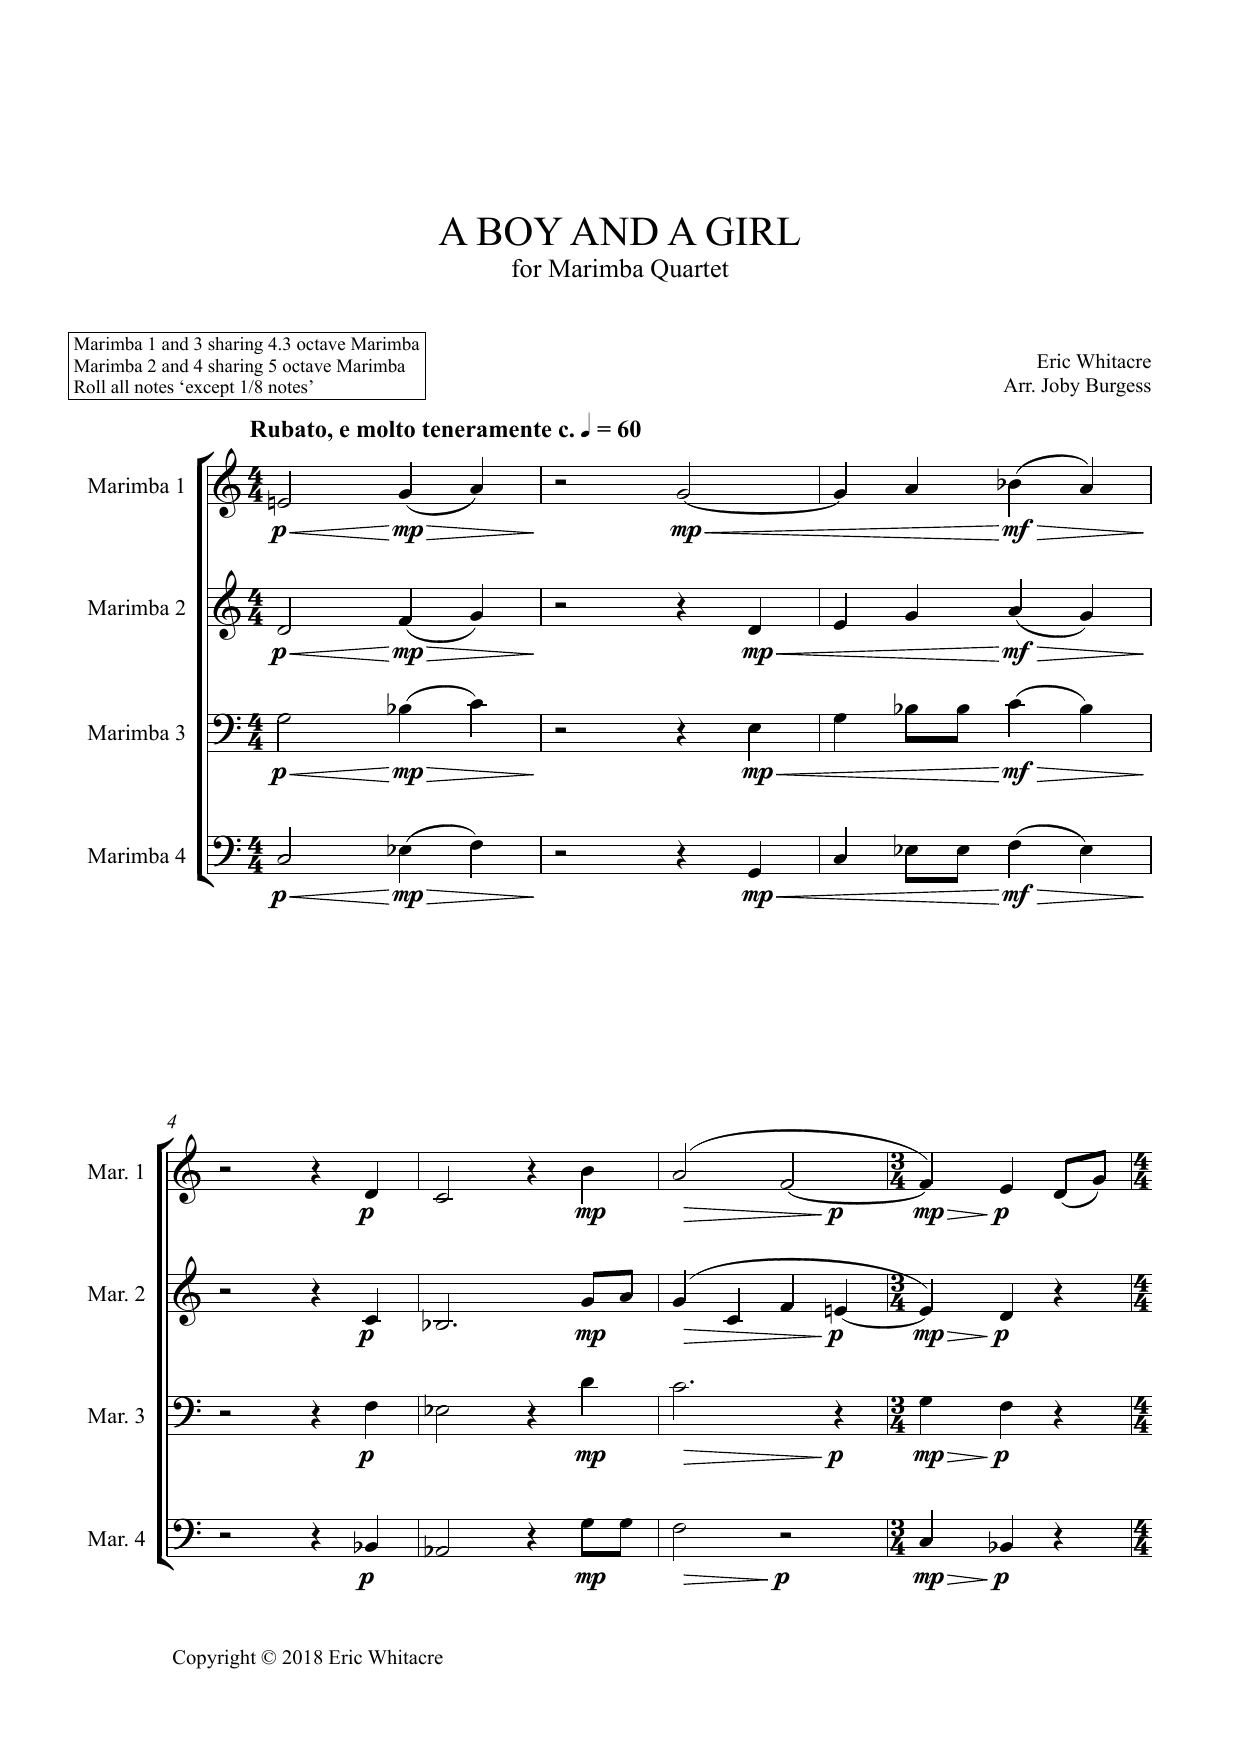 A Boy And A Girl for Marimba Quartet (arr. Joby Burgess) - Full Score Sheet Music